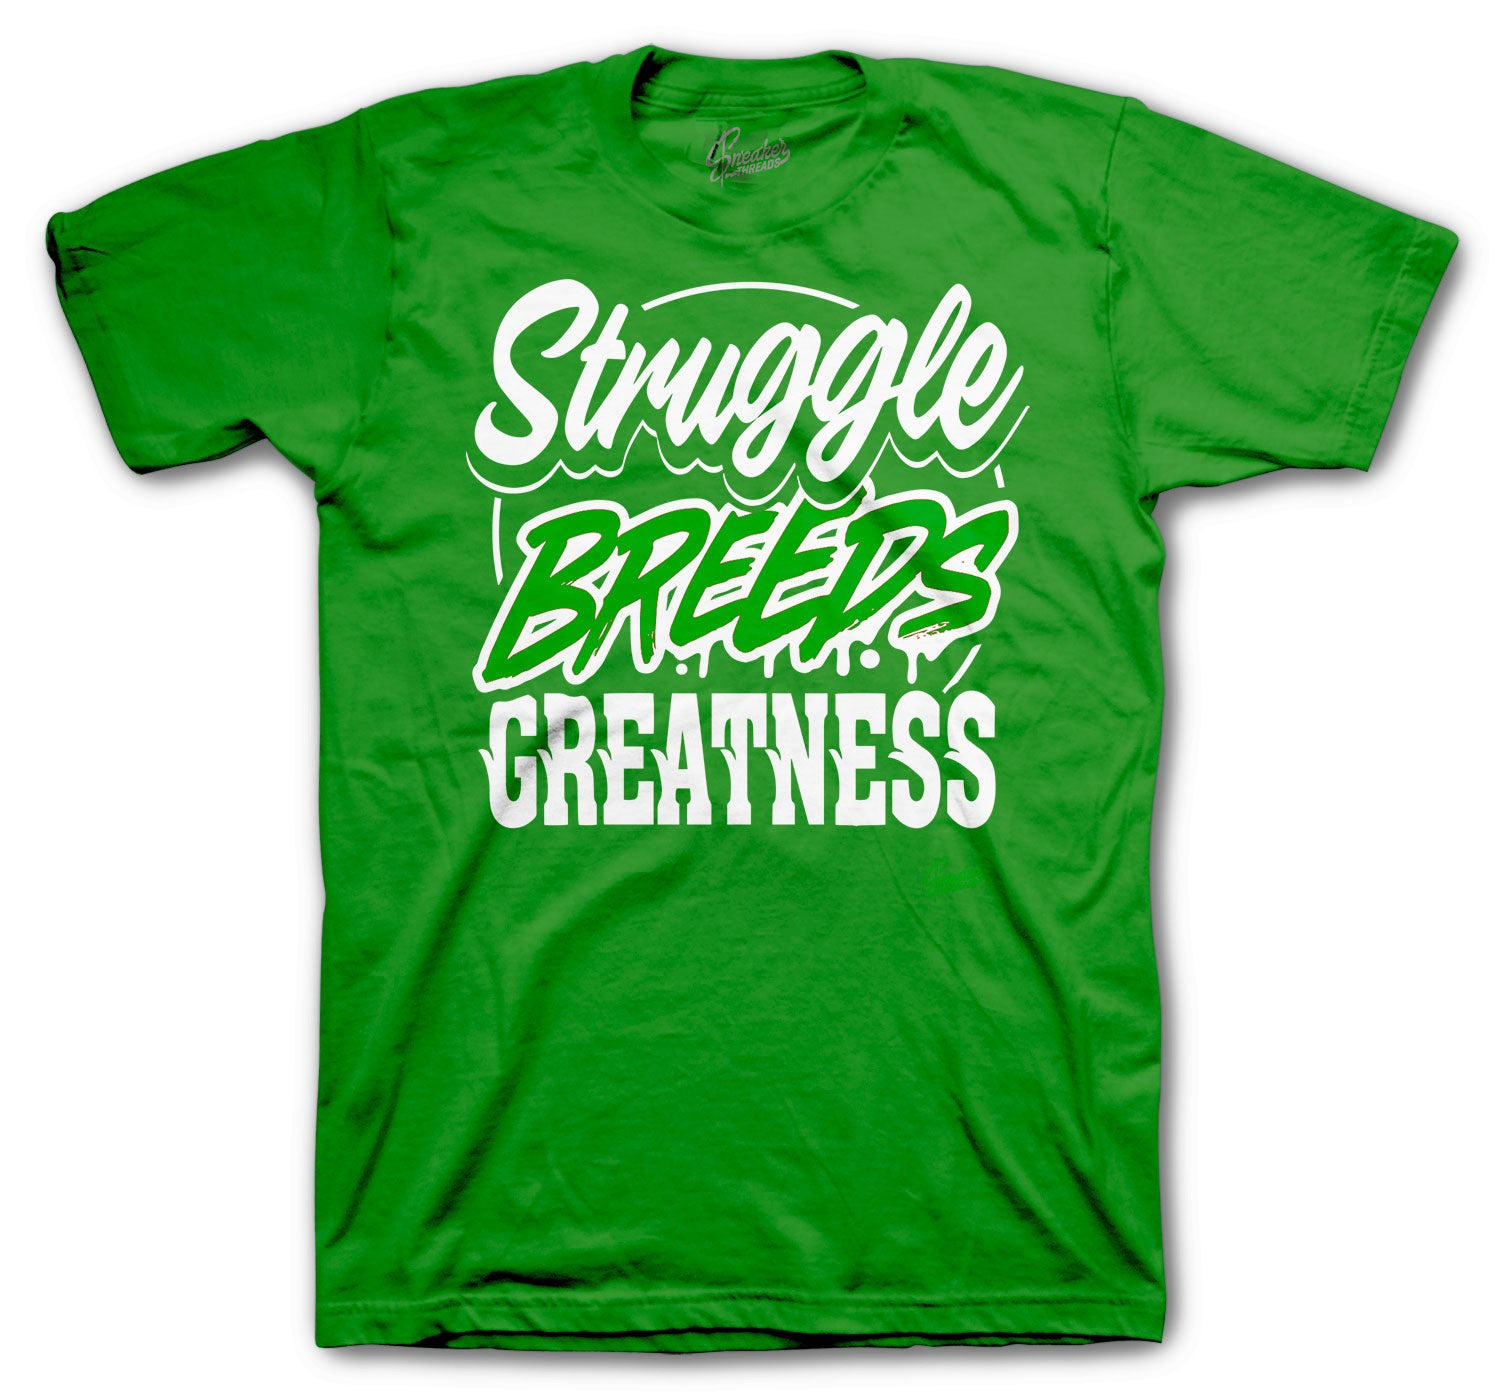 Green Metallic Jordan 4 sneakers match mens shirt collection